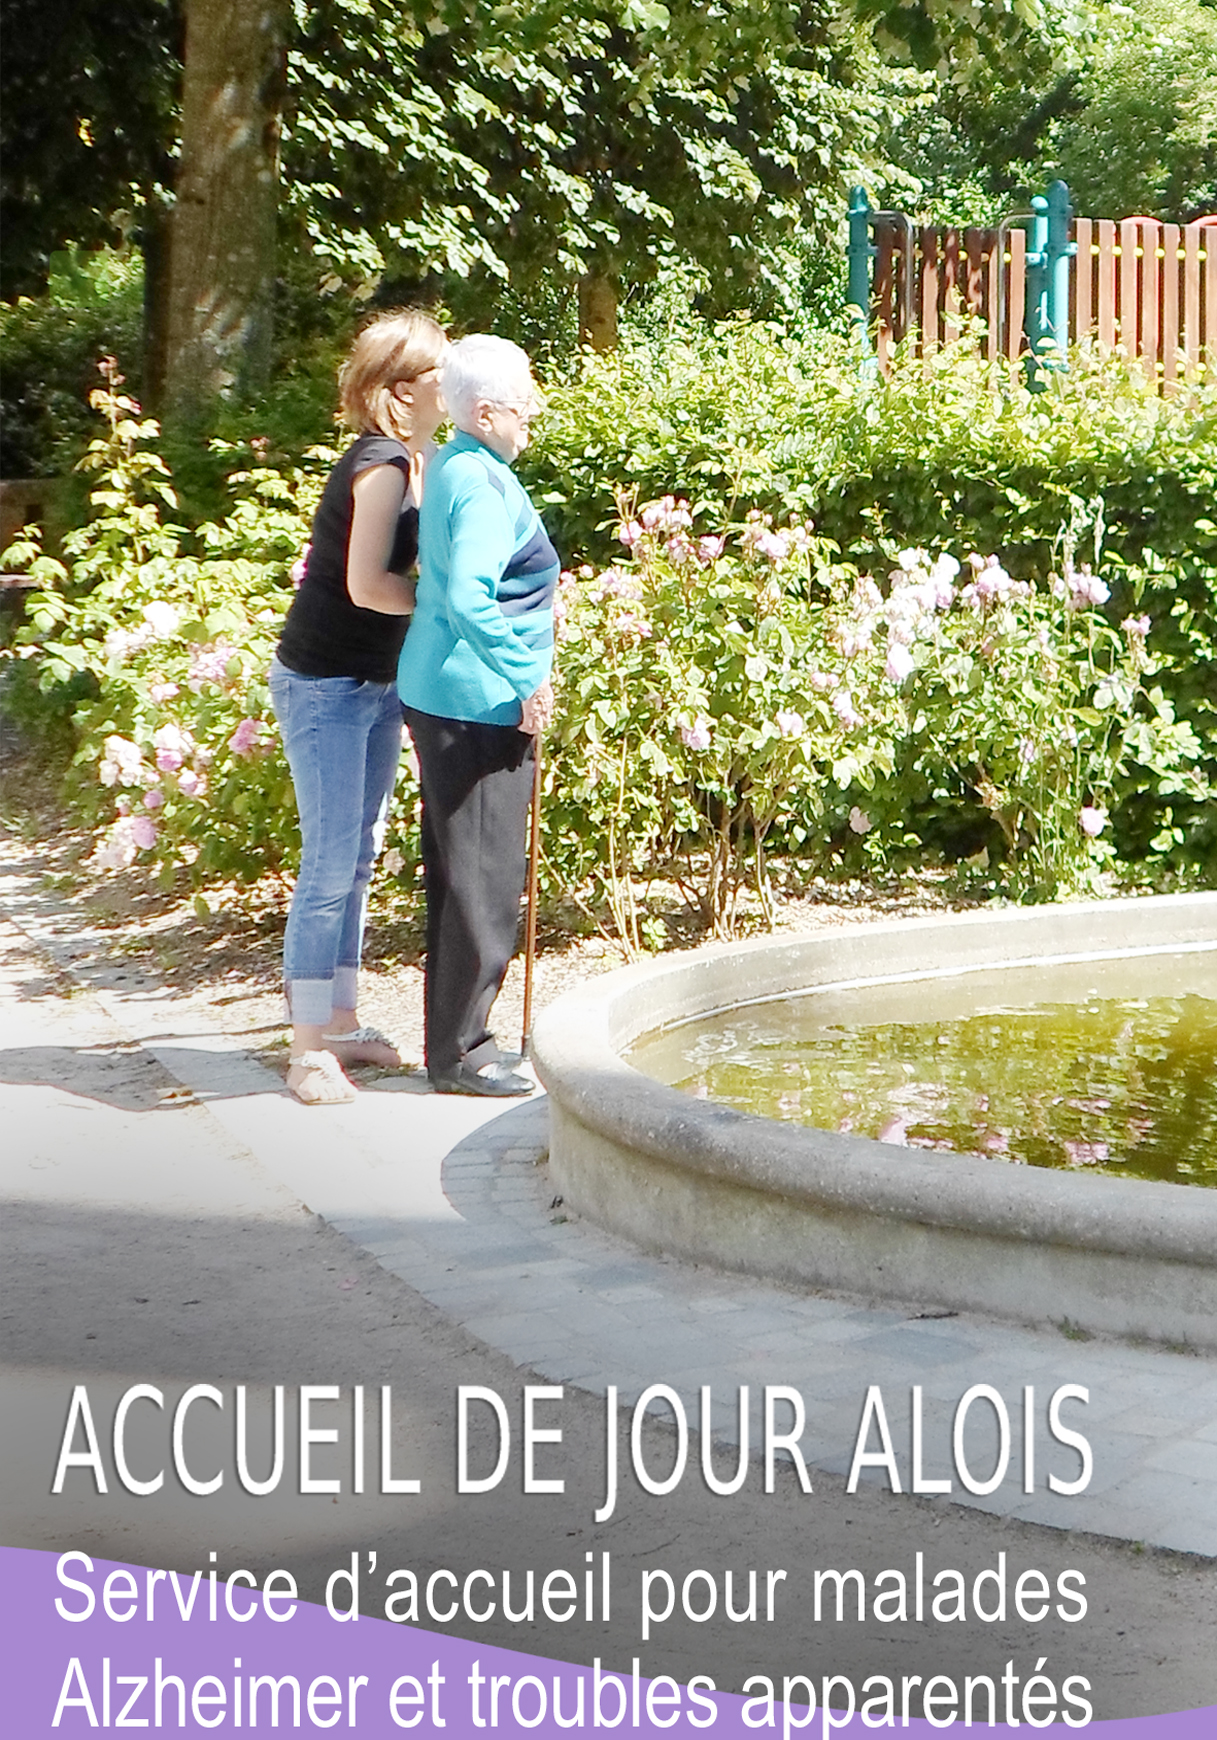 Photo alois page accueil 1